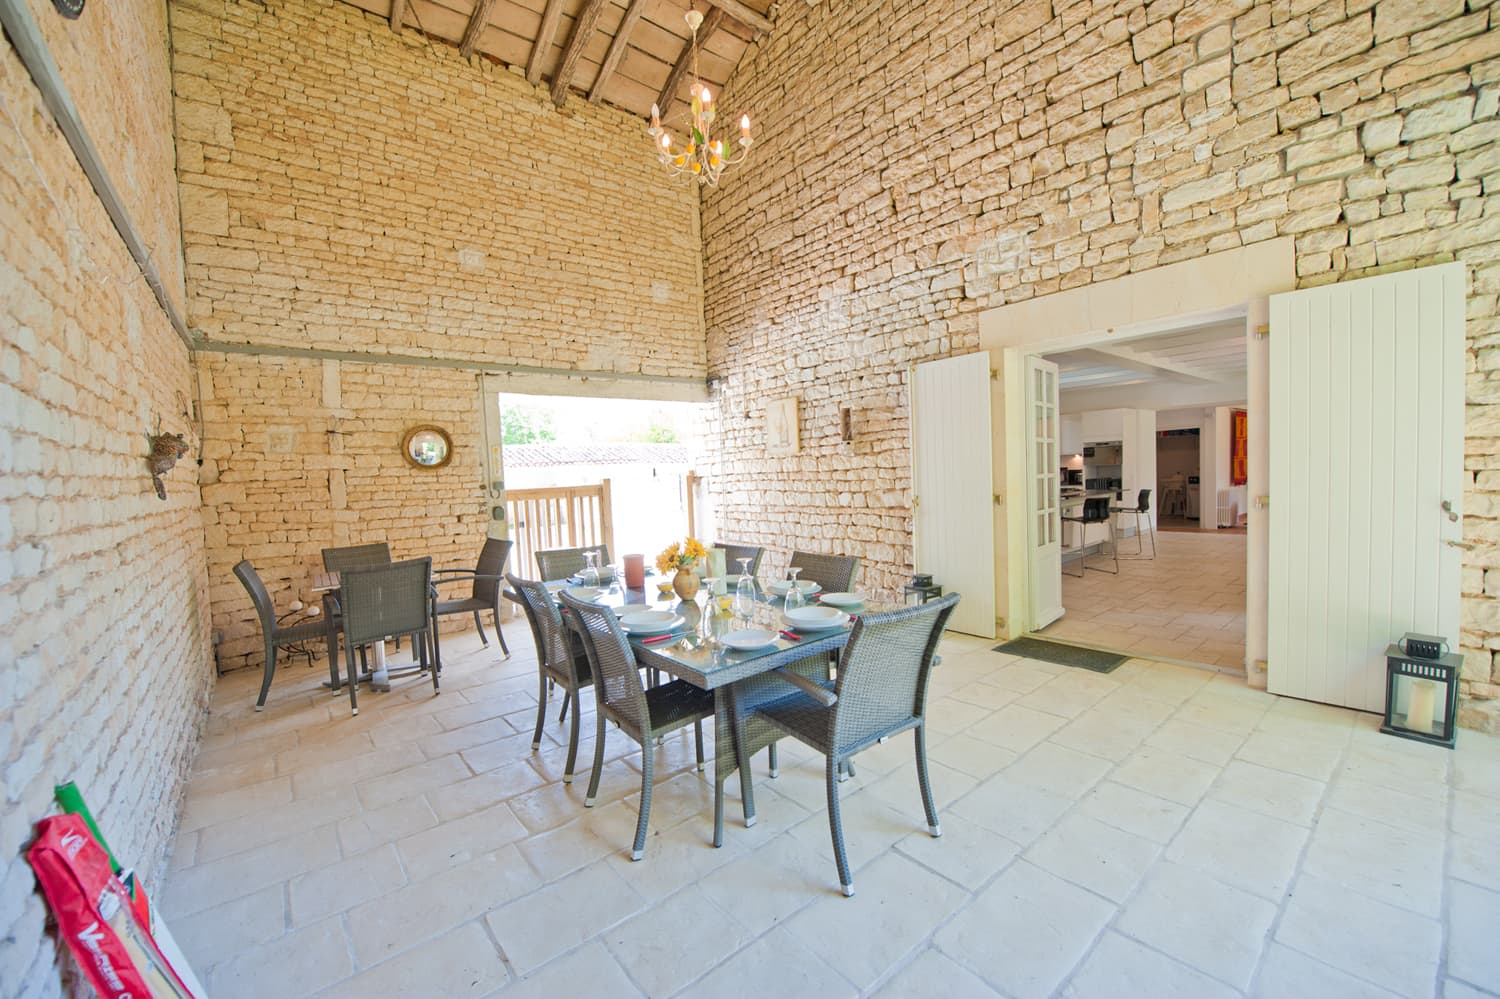 Covered dining terrace in West France rental accommodation